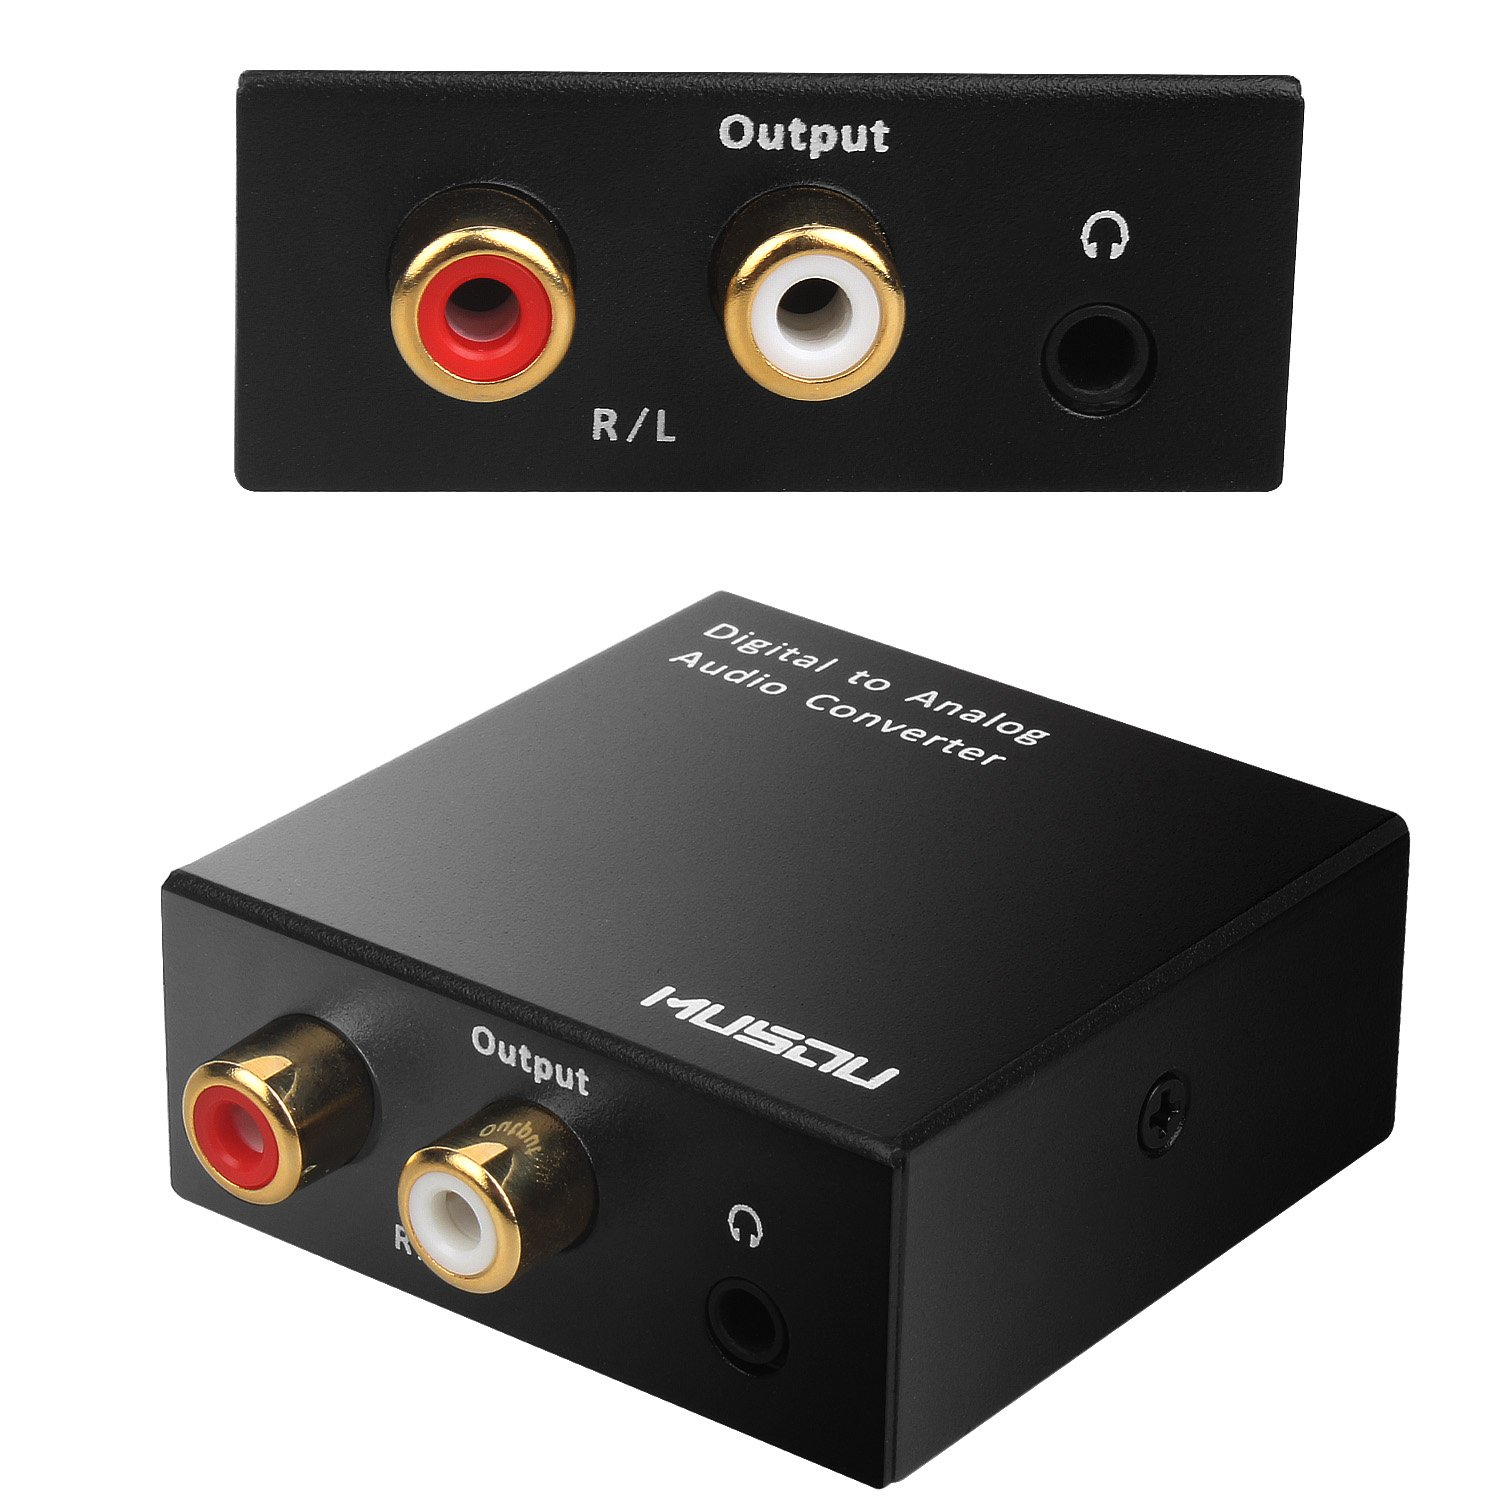 Musou 3.5mm Digital to Analog Audio Converter Optical S PDIF Toslink Coaxial to RCA L R 24 bit DAC with Fiber Cables Black